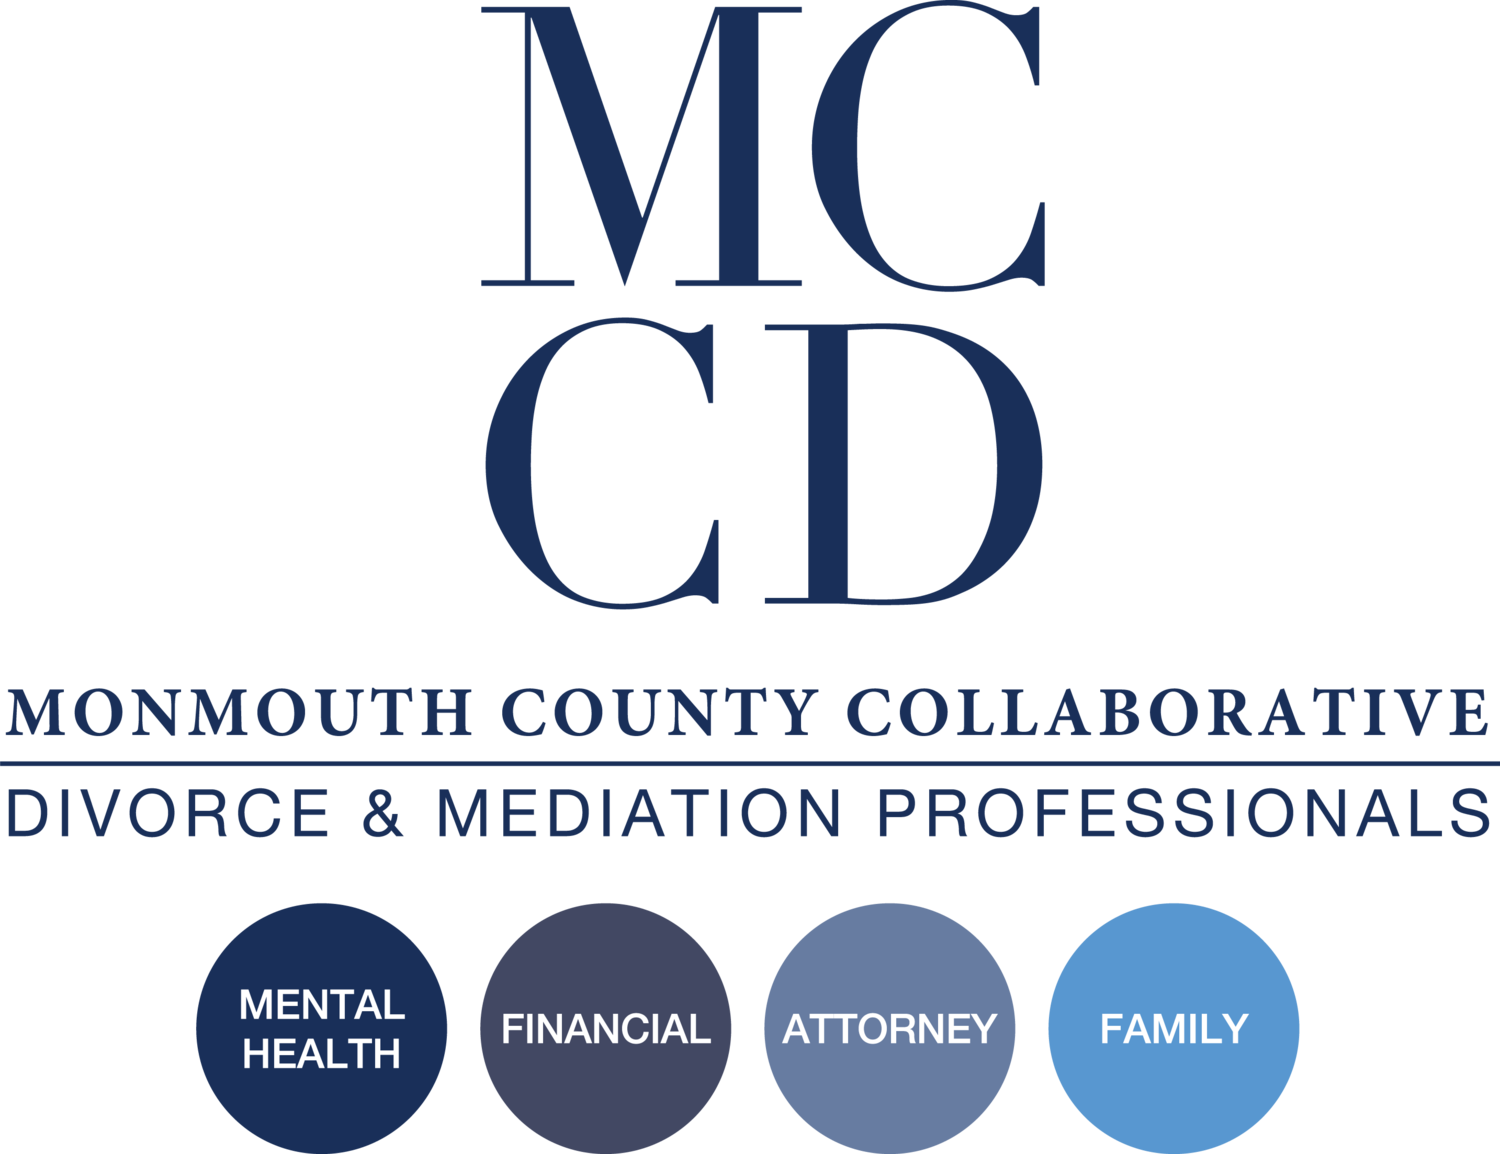 Monmouth County Collaborative Divorce & Mediation Professionals